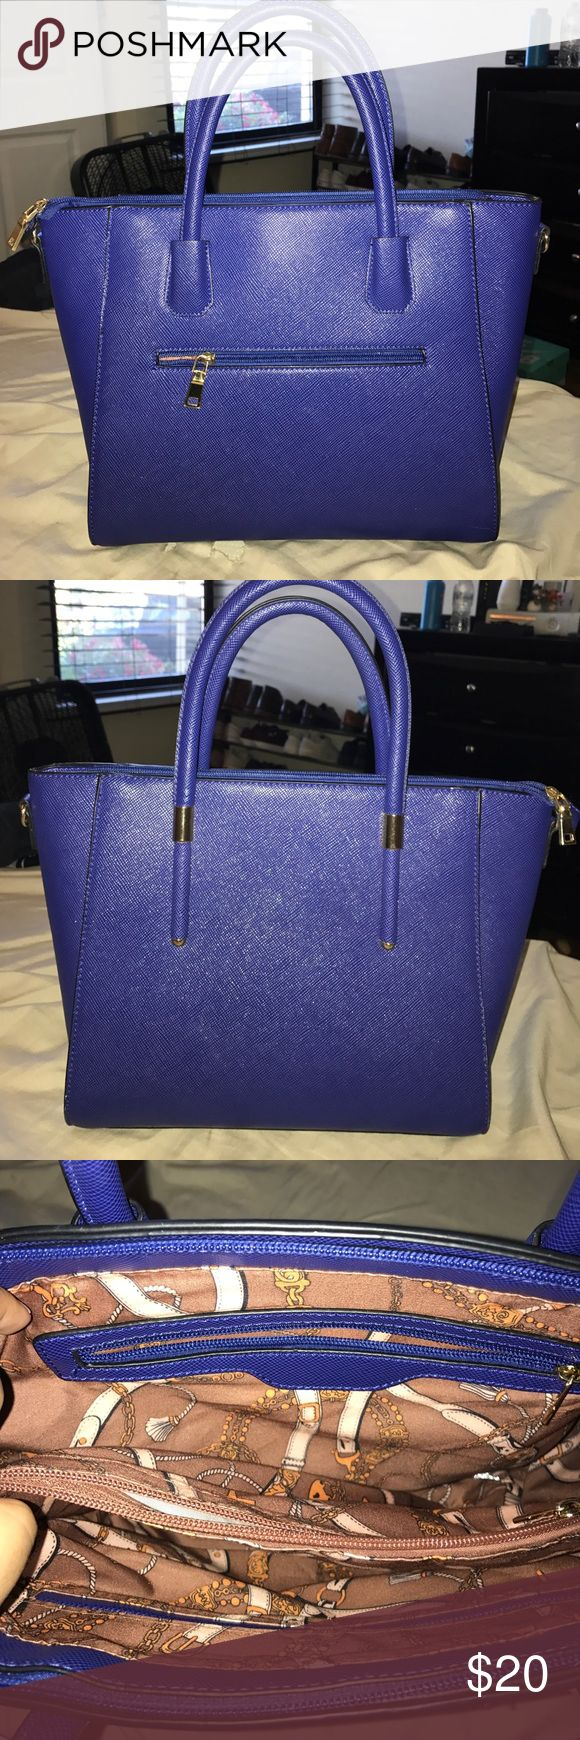 Large purple/blue purse Beautiful Purple/Blue purse with gold zippers. 3 inside pockets and 1 large theft proof zipper section. I bought the bag at TJ Max and don't know the brand (no labels on it). Like new! Bags Shoulder Bags